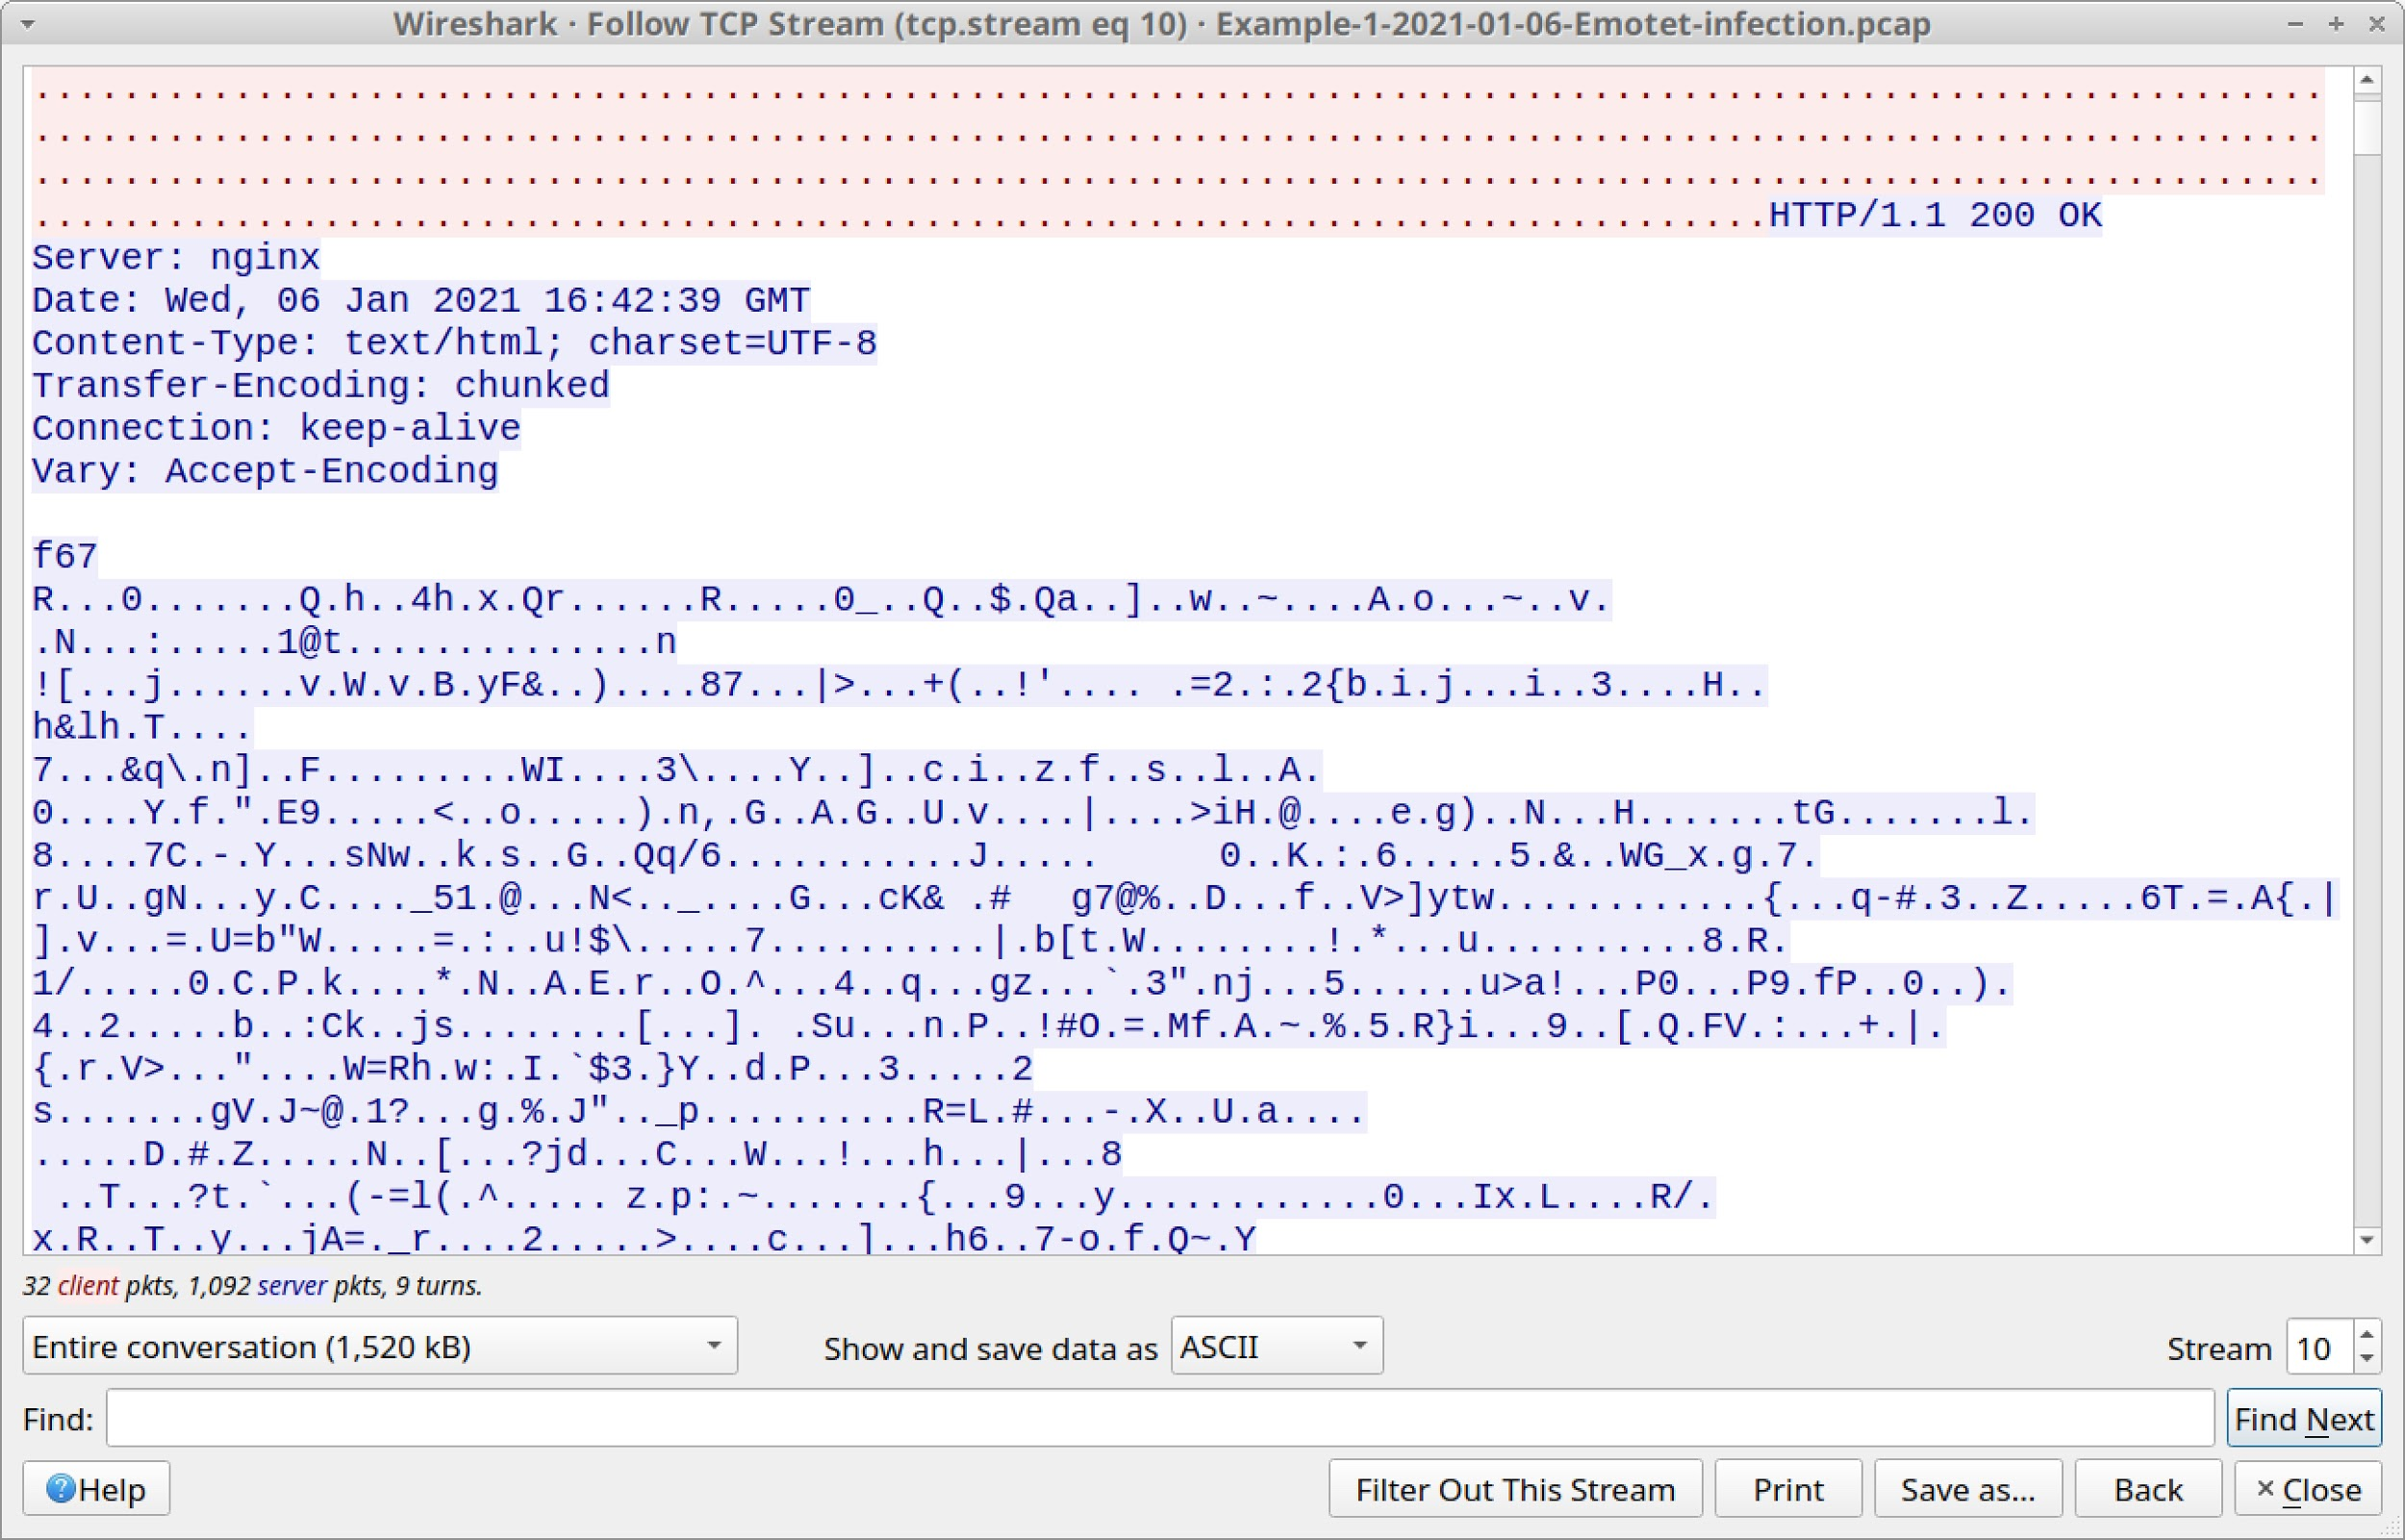 Figure 13. Encoded data returned from the server in response to the HTTP POST request.